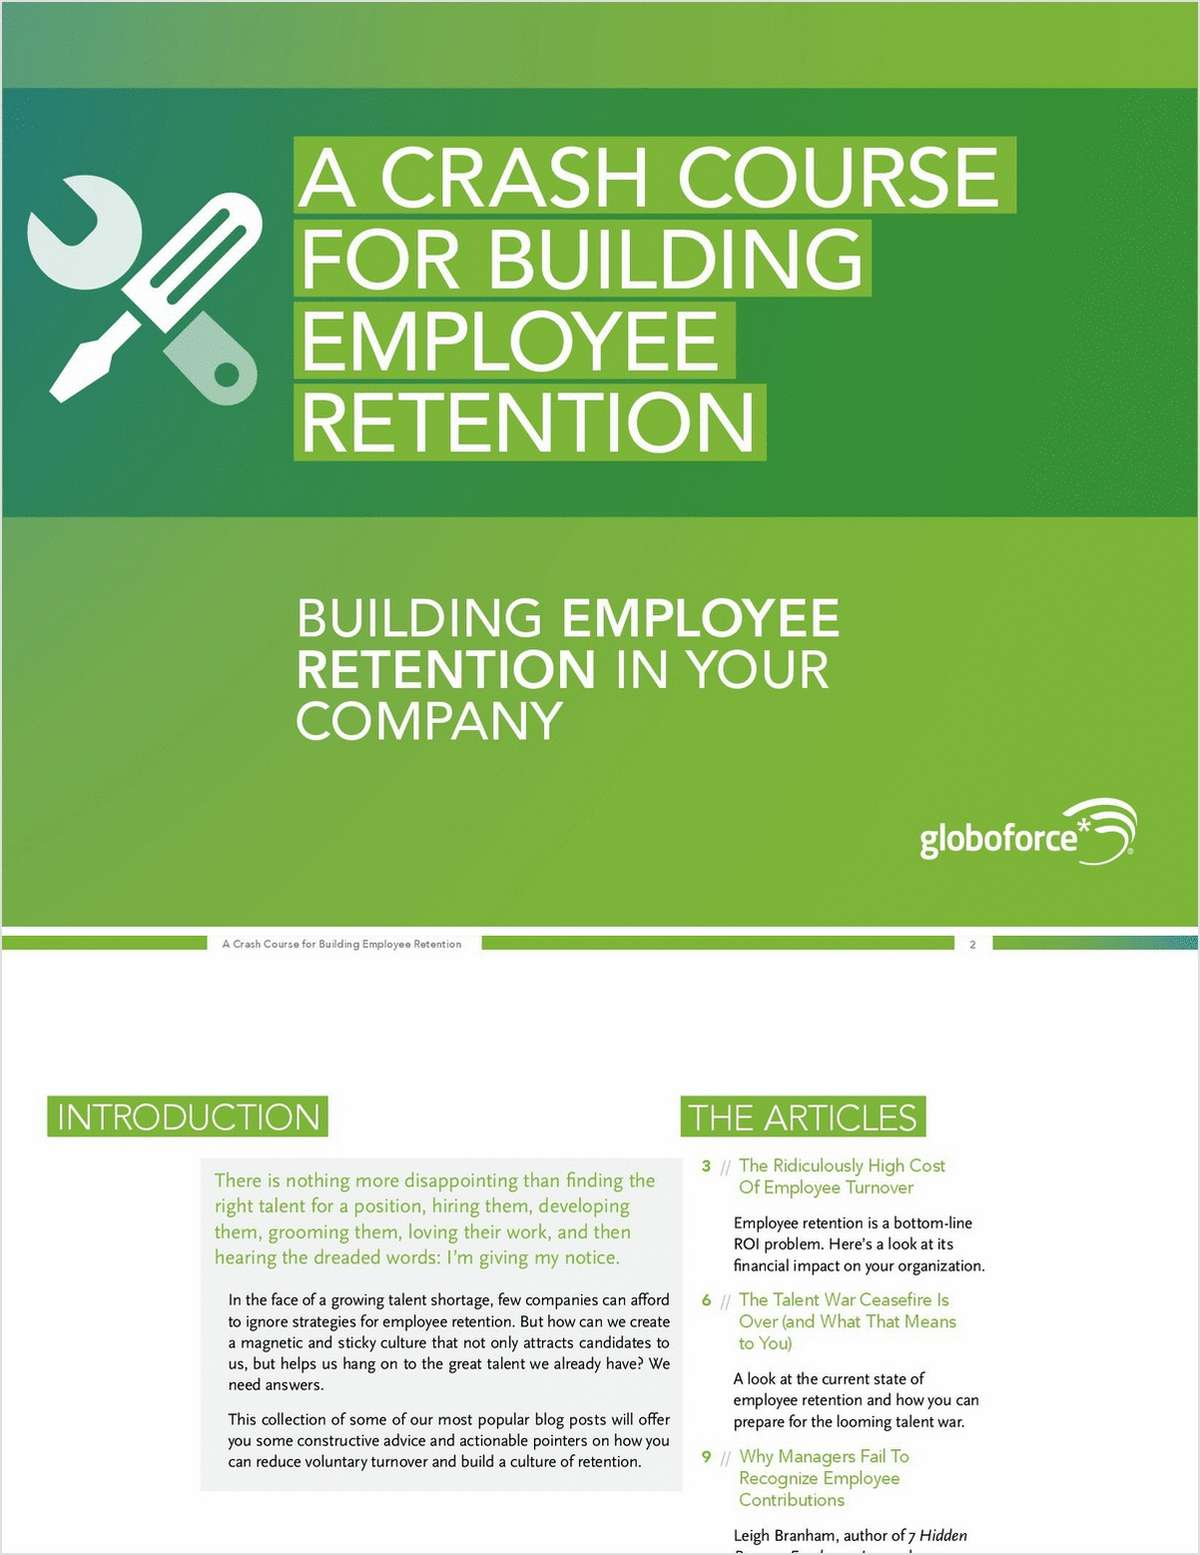 A Crash Course on Building Employee Retention